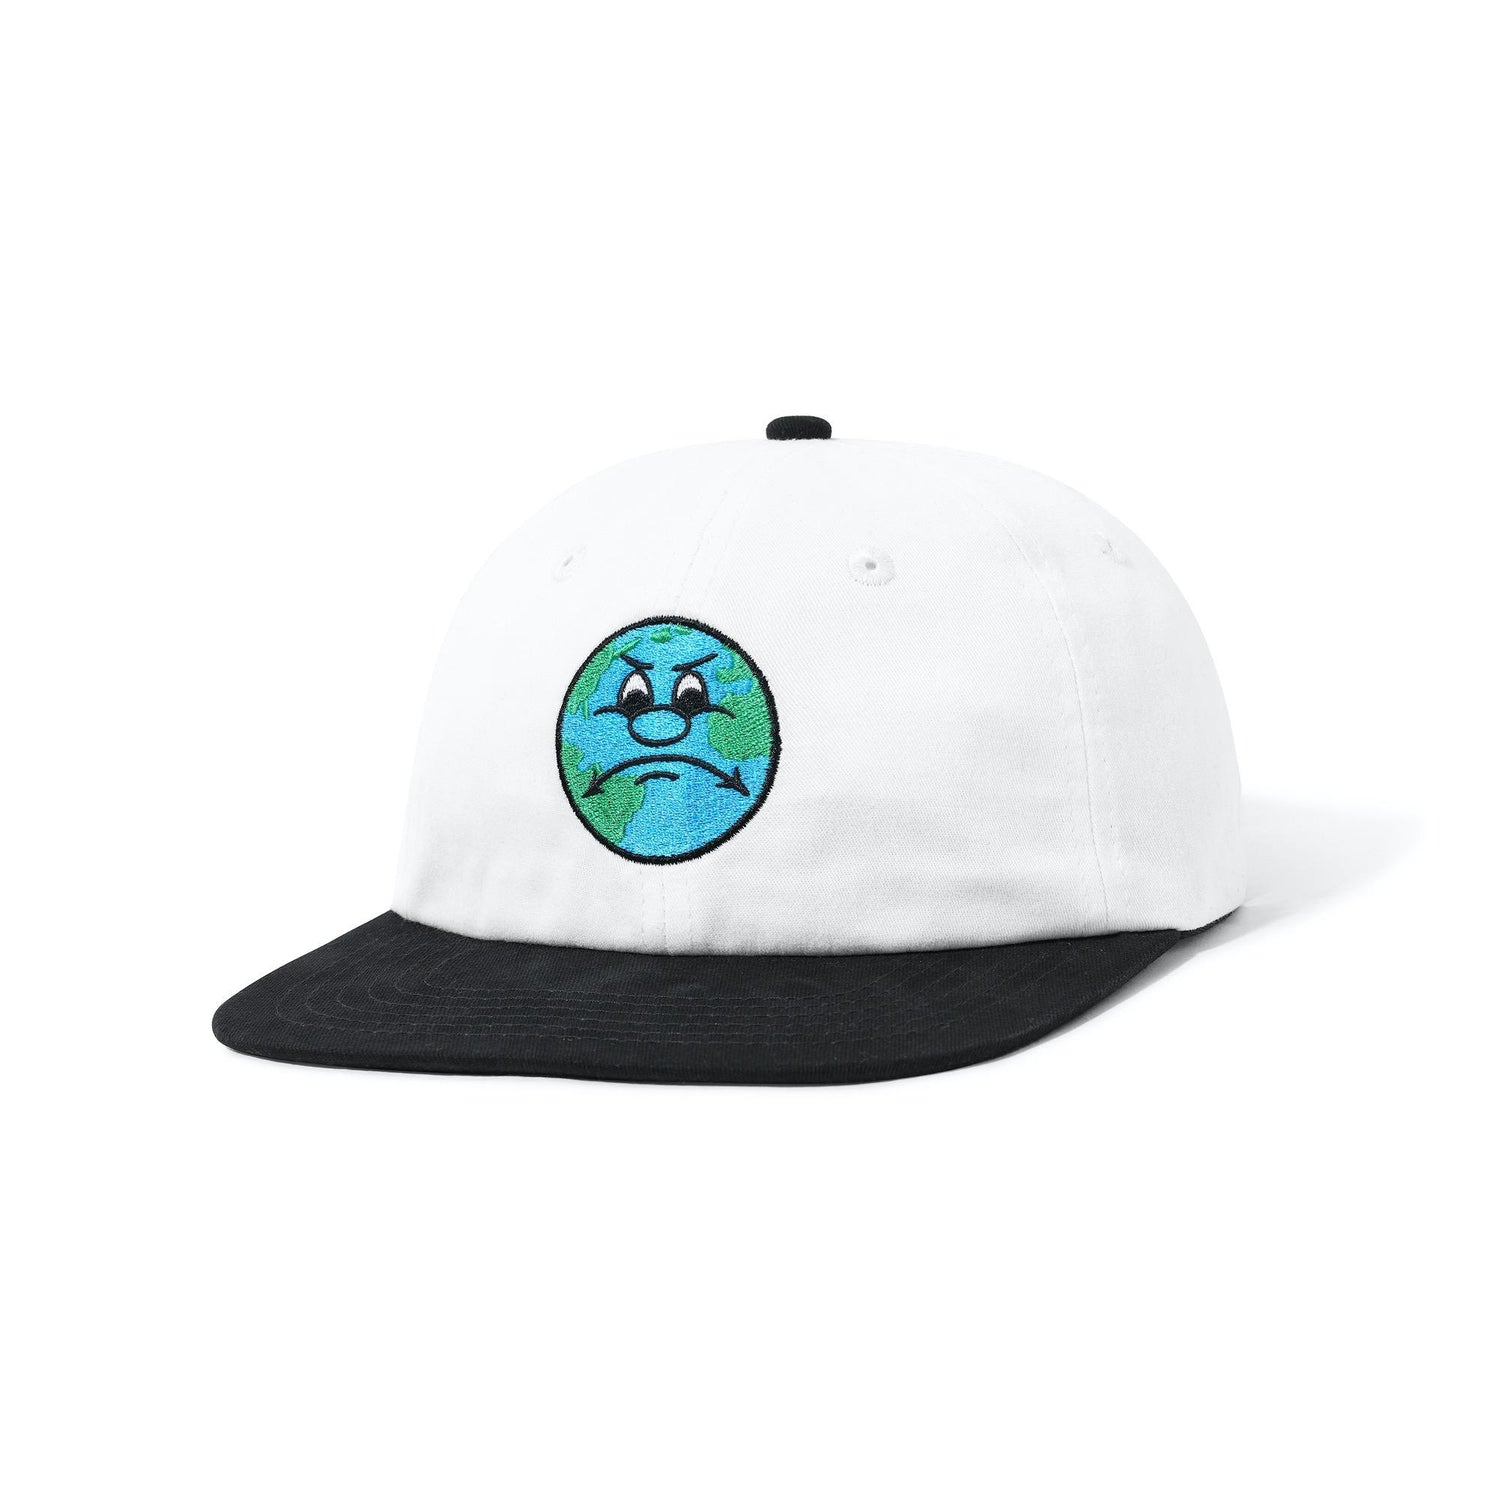 World 6 Panel, White / Black